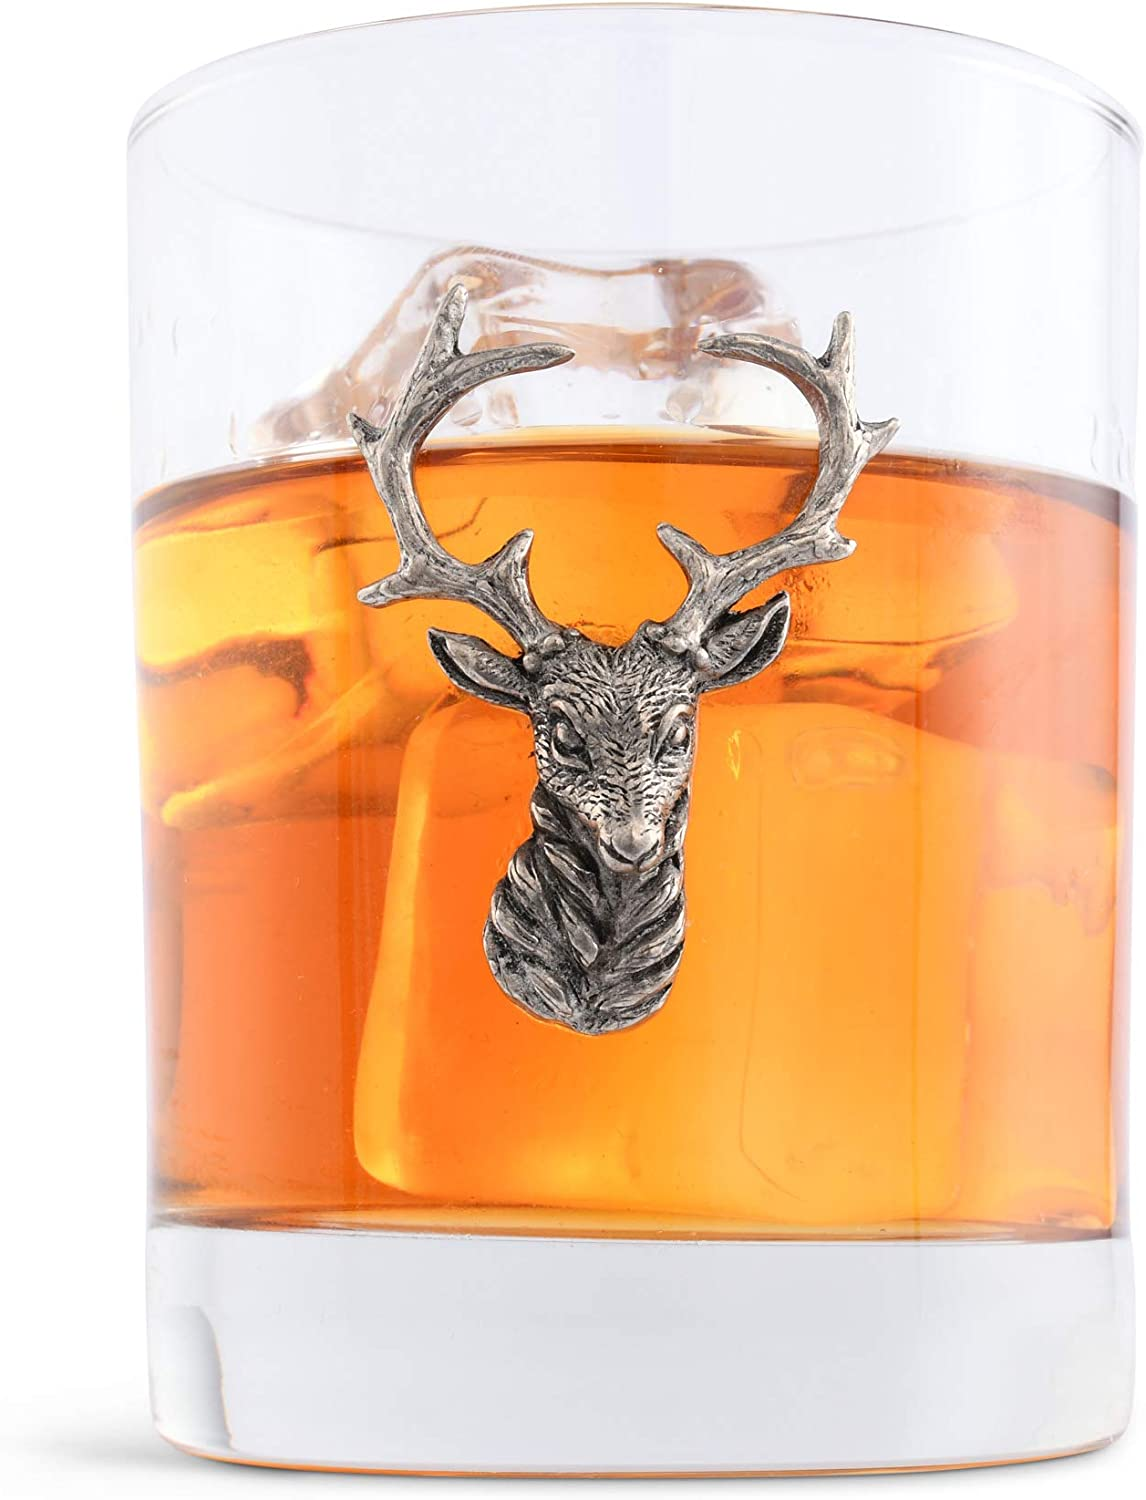 Stunning pewterware Stag/'s Head 12oz whisky glasses